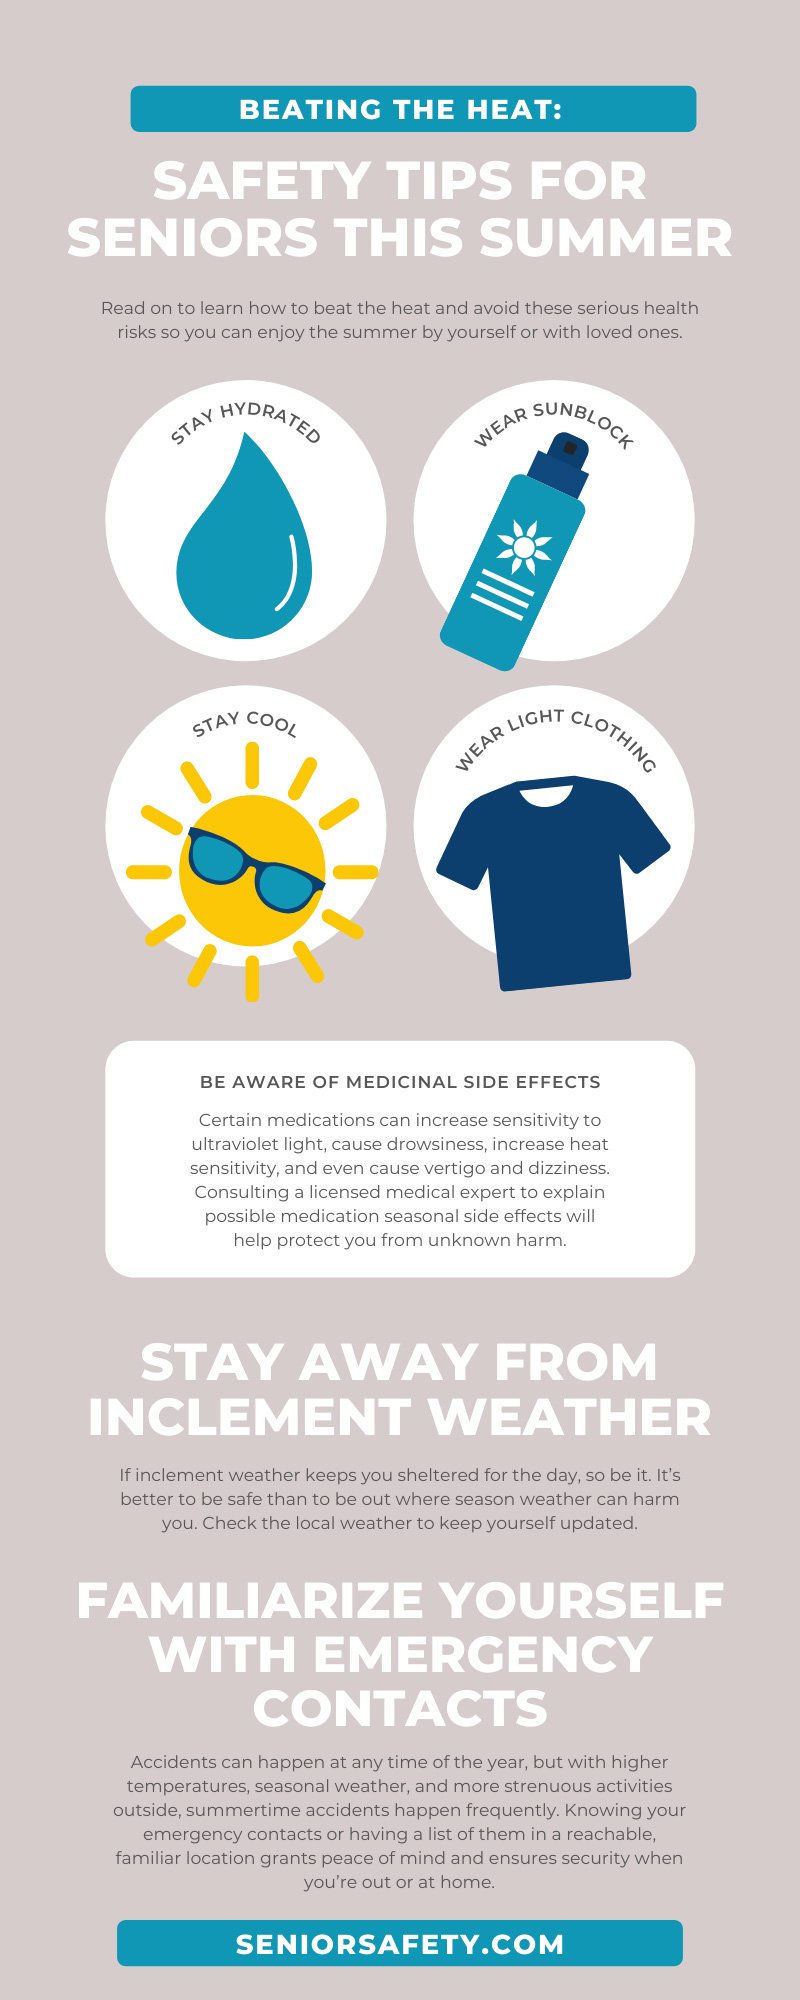 Beating the Heat: Safety Tips for Seniors This Summer